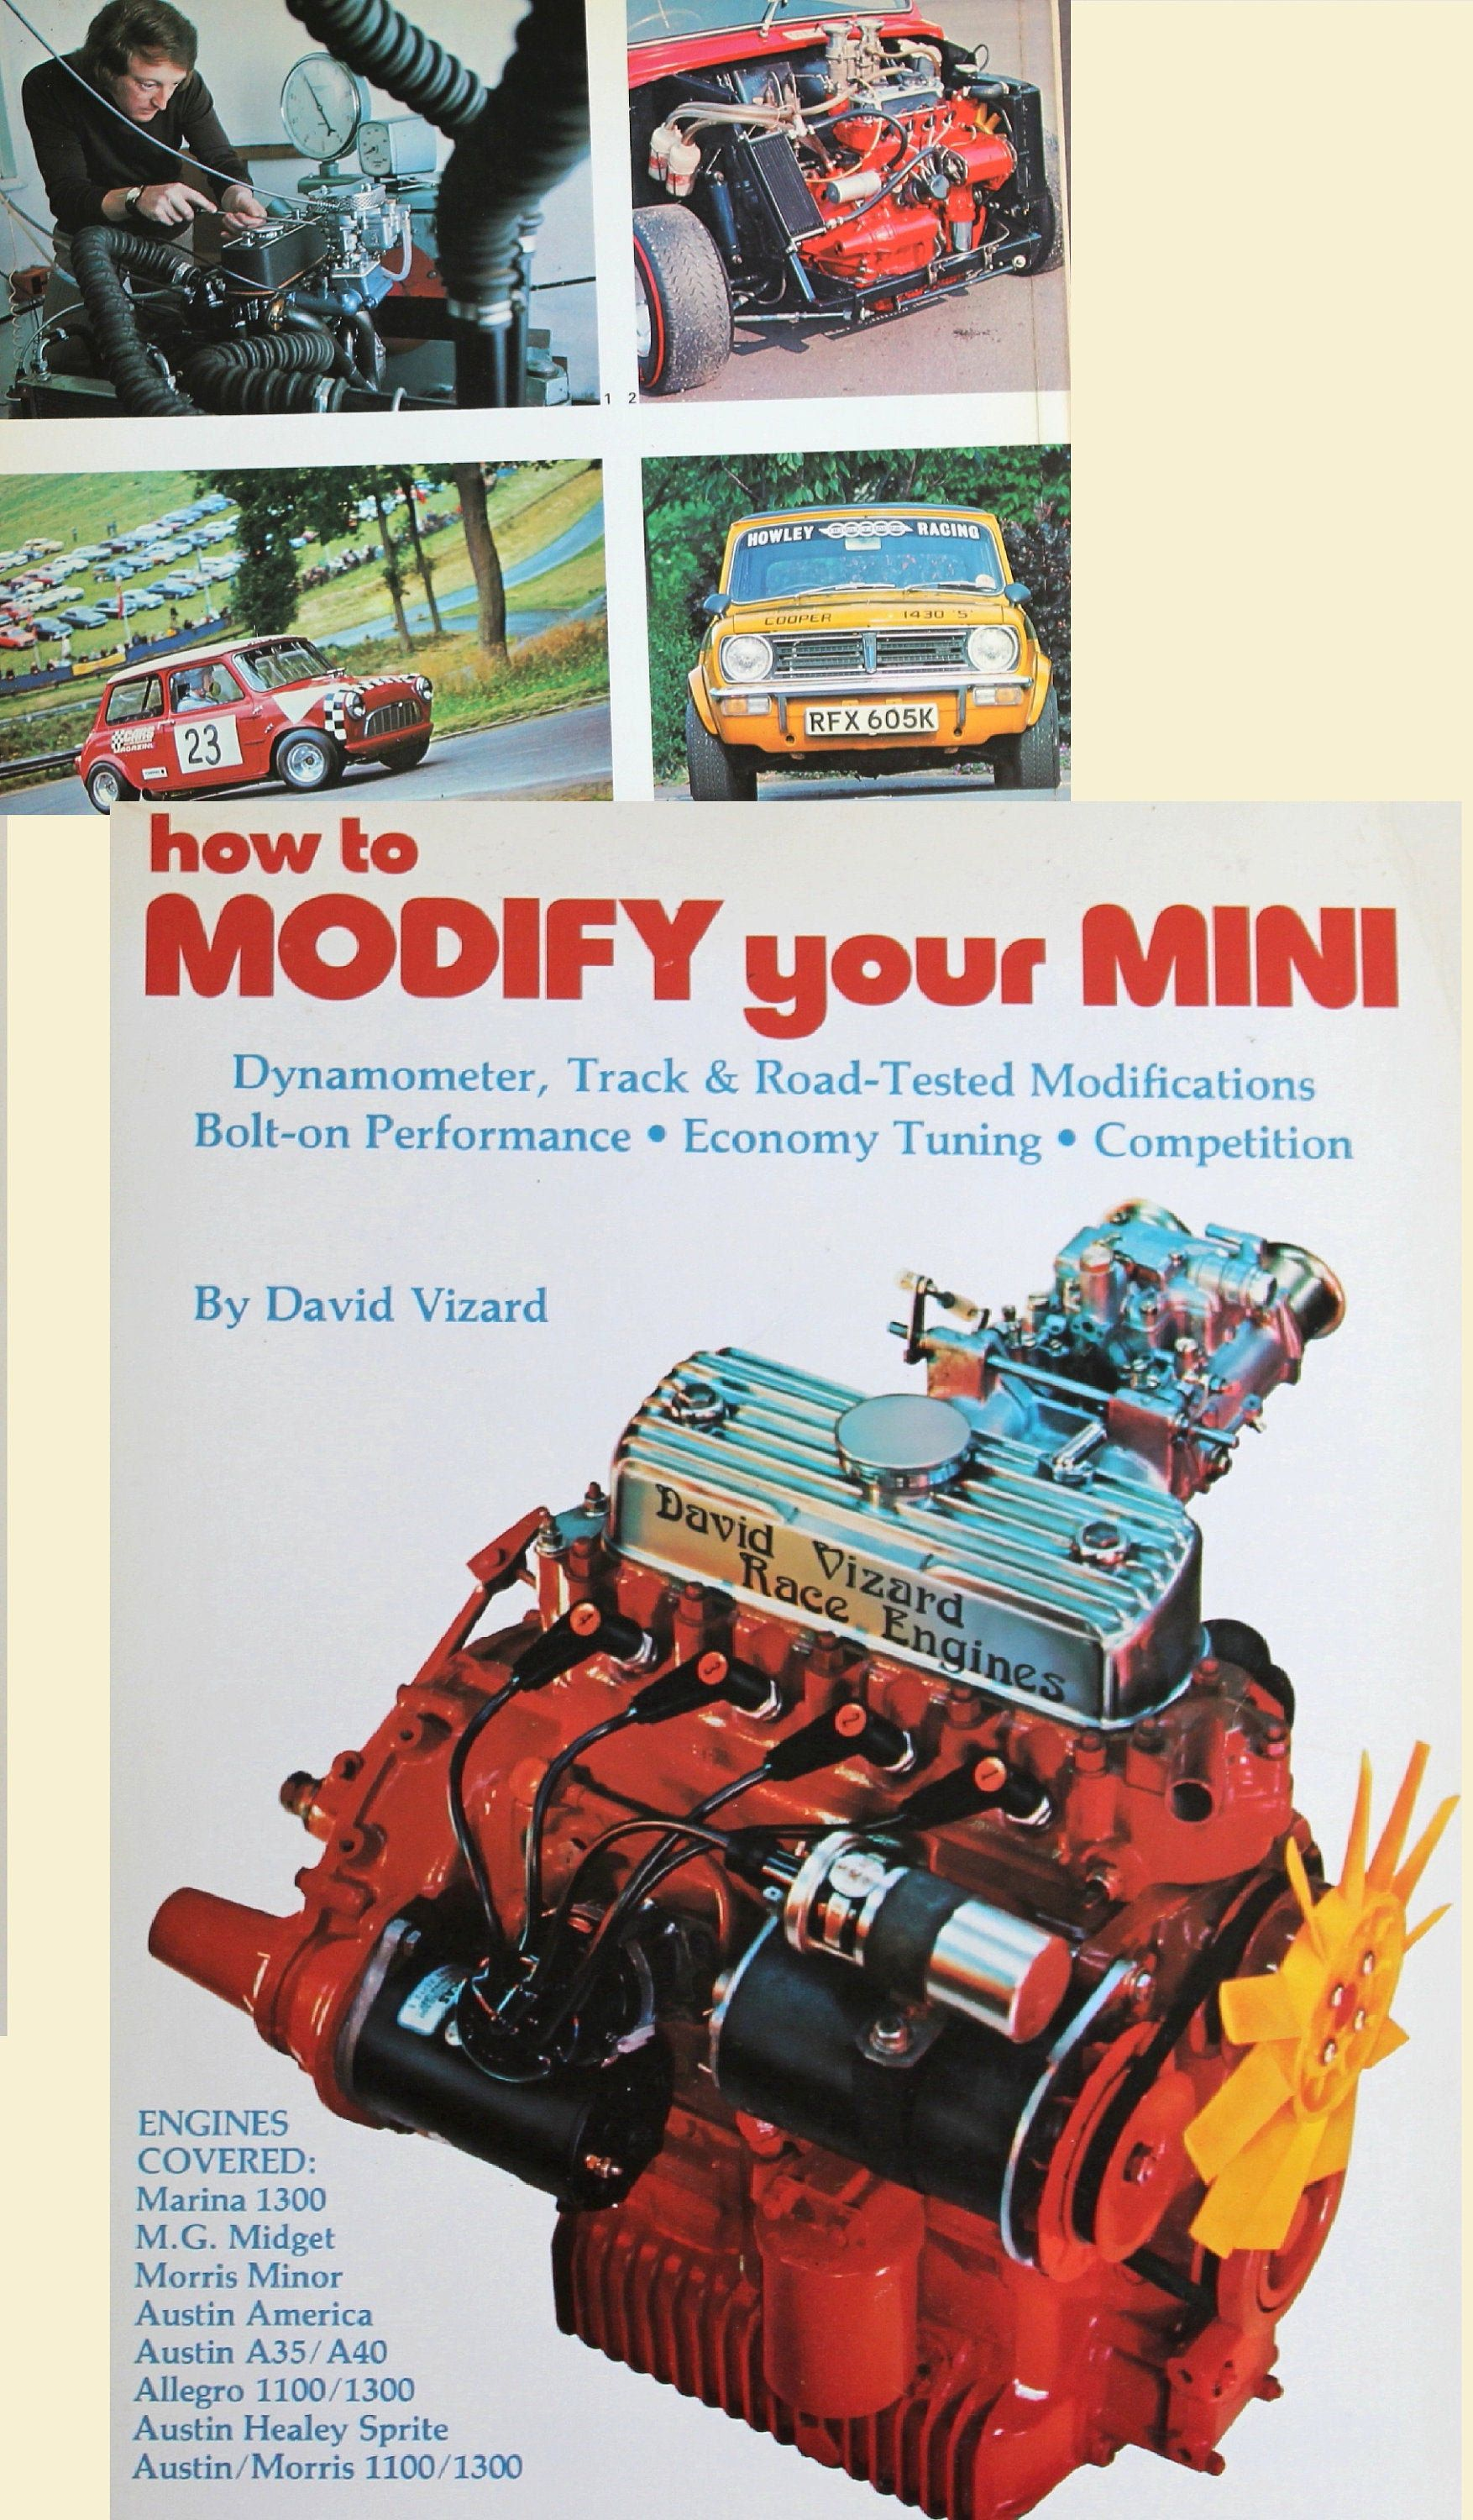 How to modify your mini to suit your needs race engines